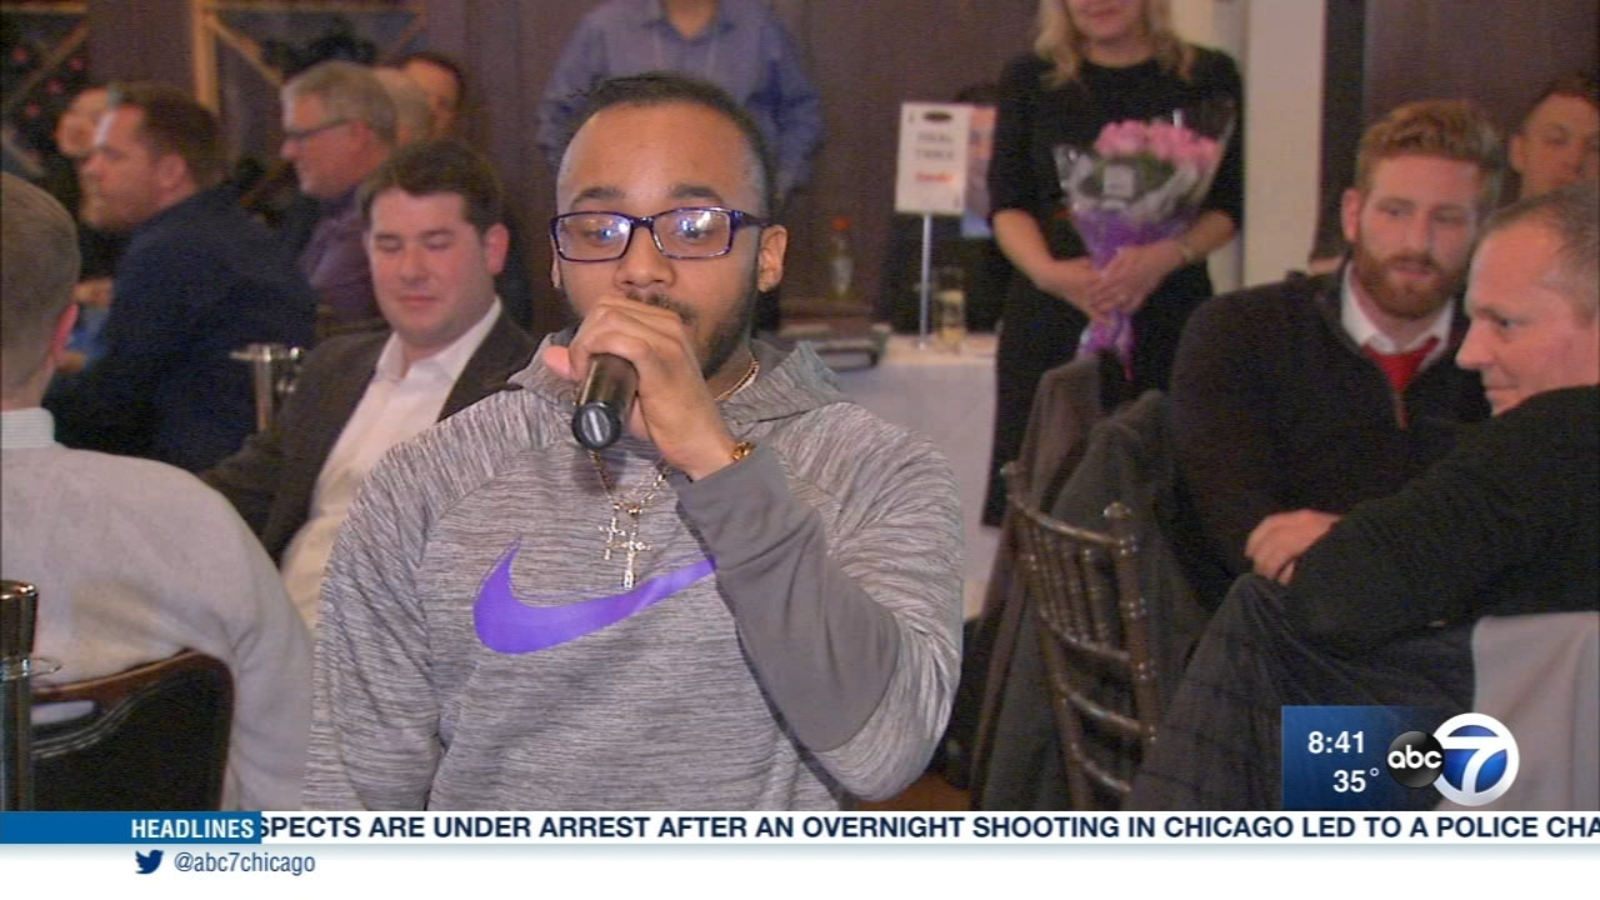 Chicago Lighthouse helps resident Rapper pursue his dreams